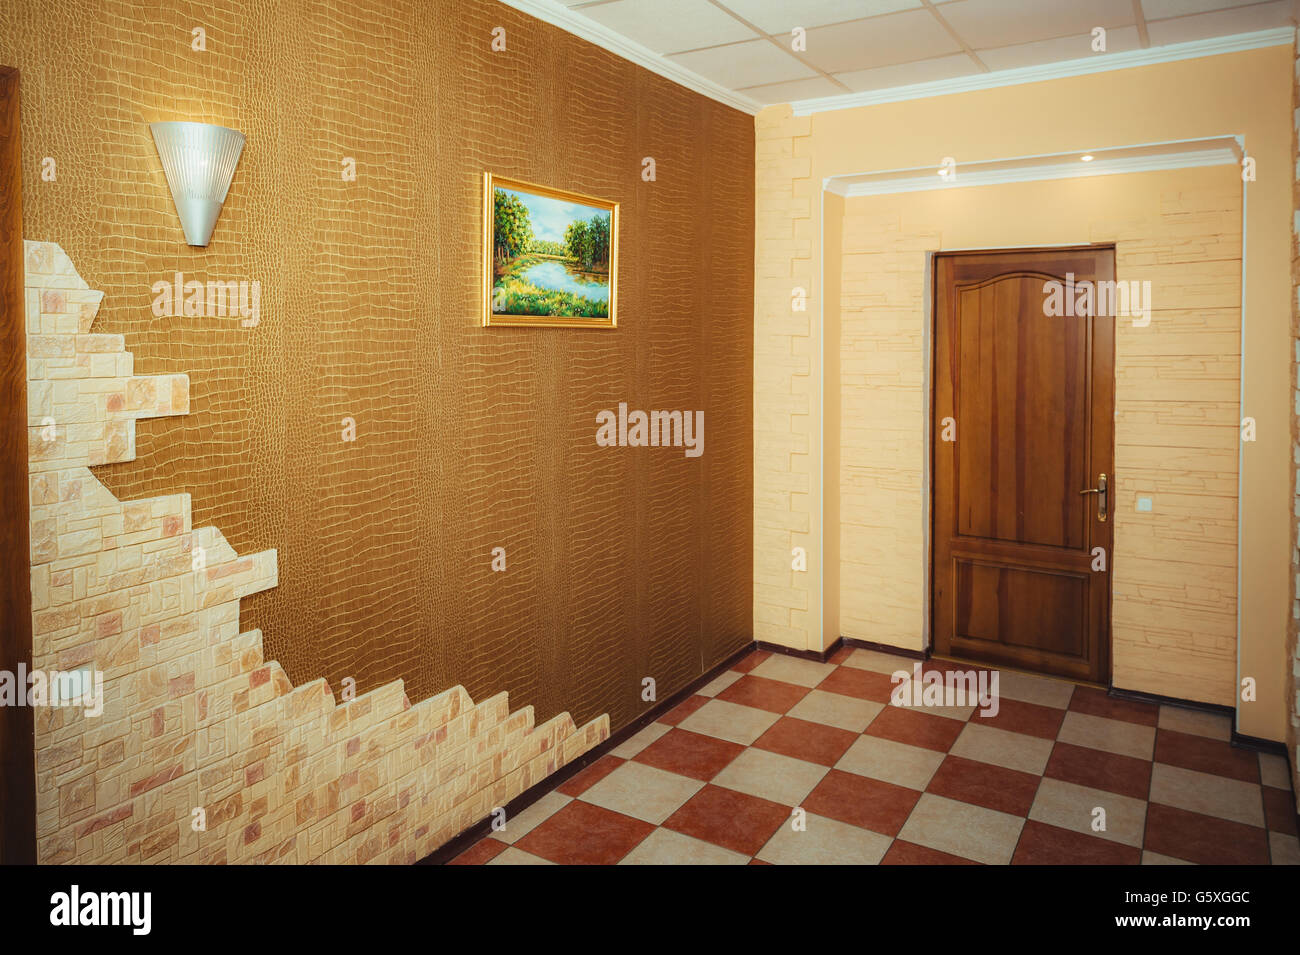 Entrance To The Apartment Grand Design Corridor And Main Door